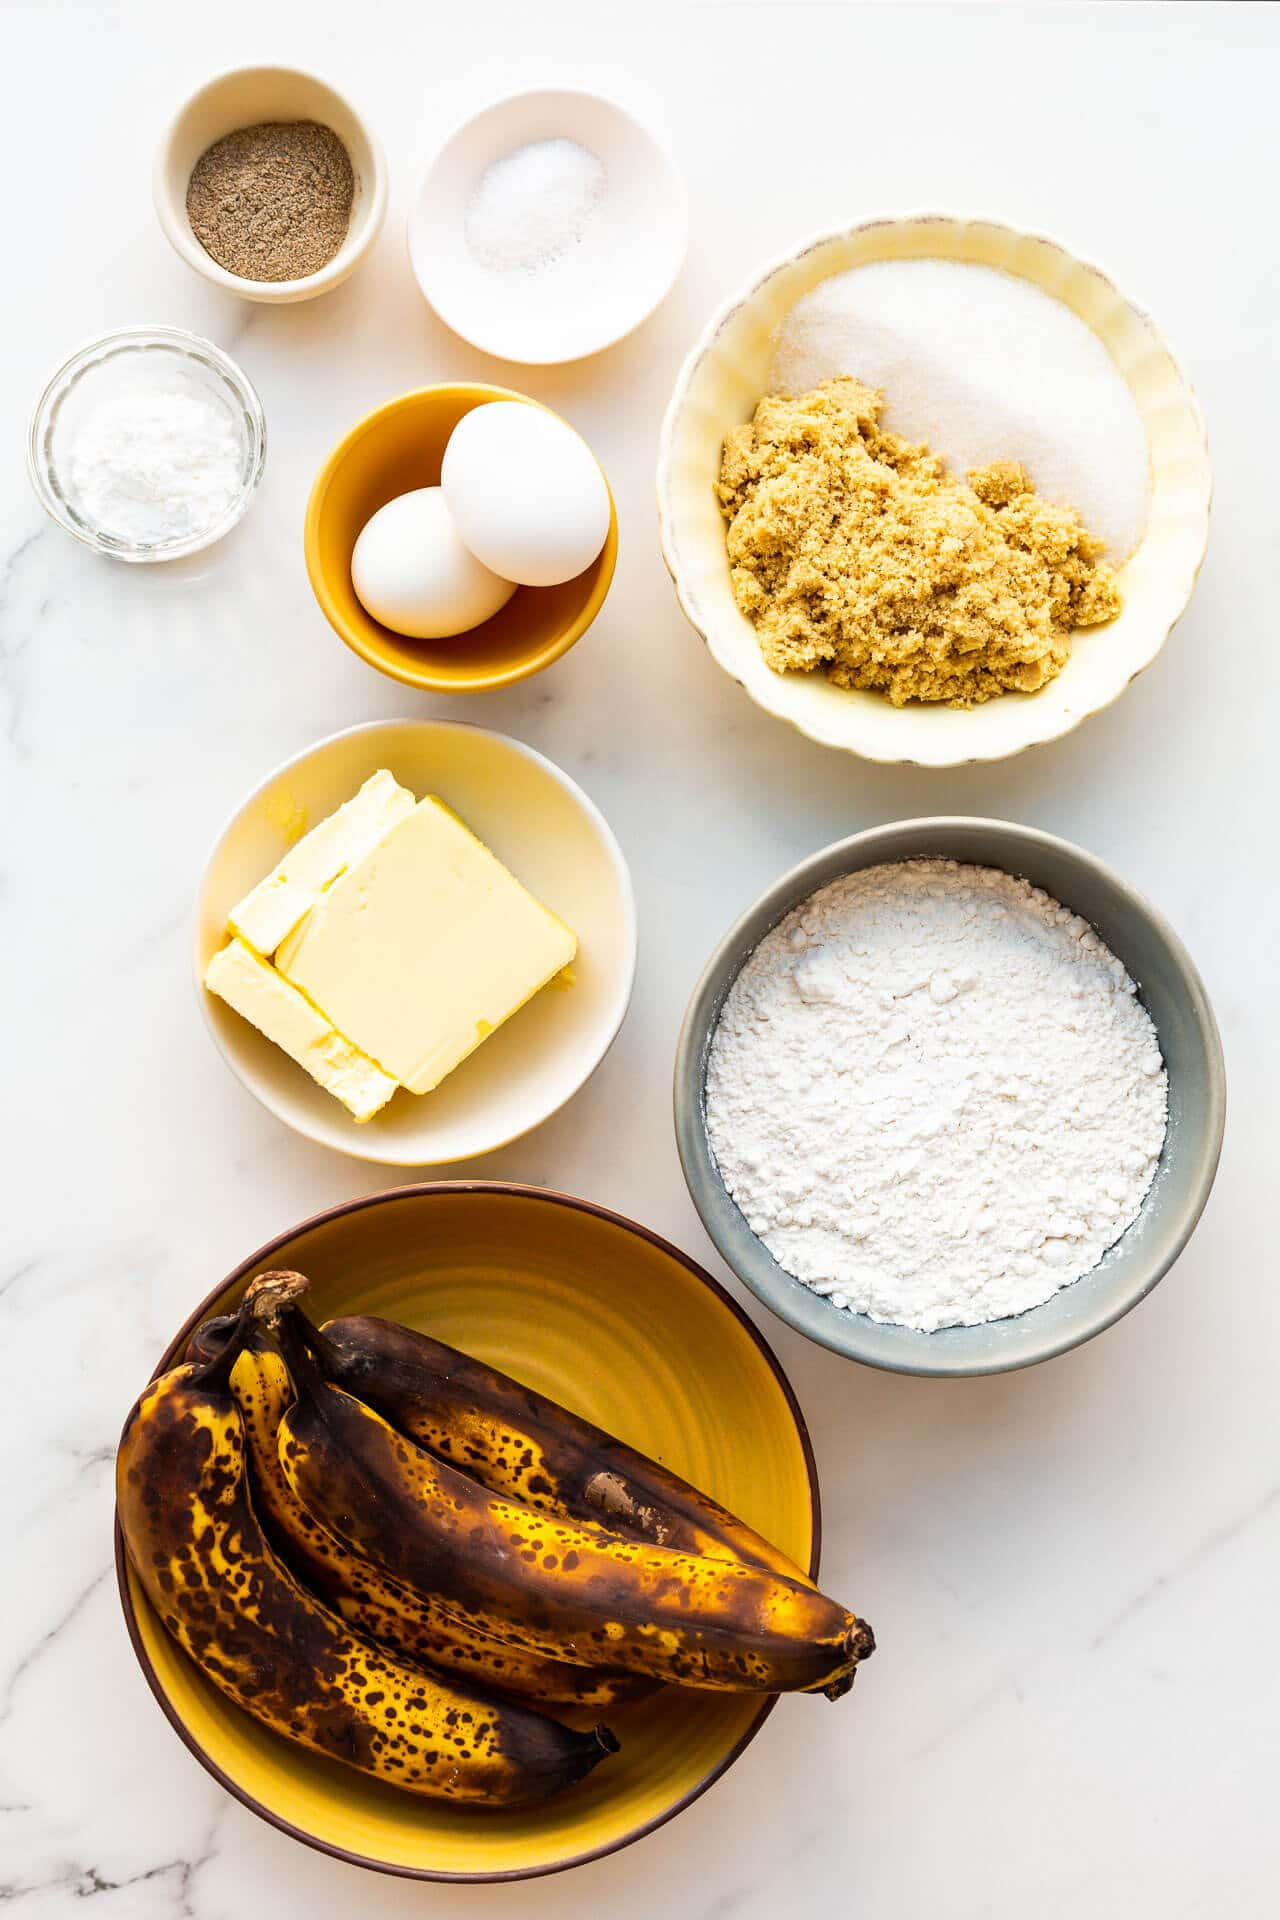 Basic banana bread ingredients: butter, sugar, eggs, bananas, flour, baking powder, and salt (cardamom for flavour)